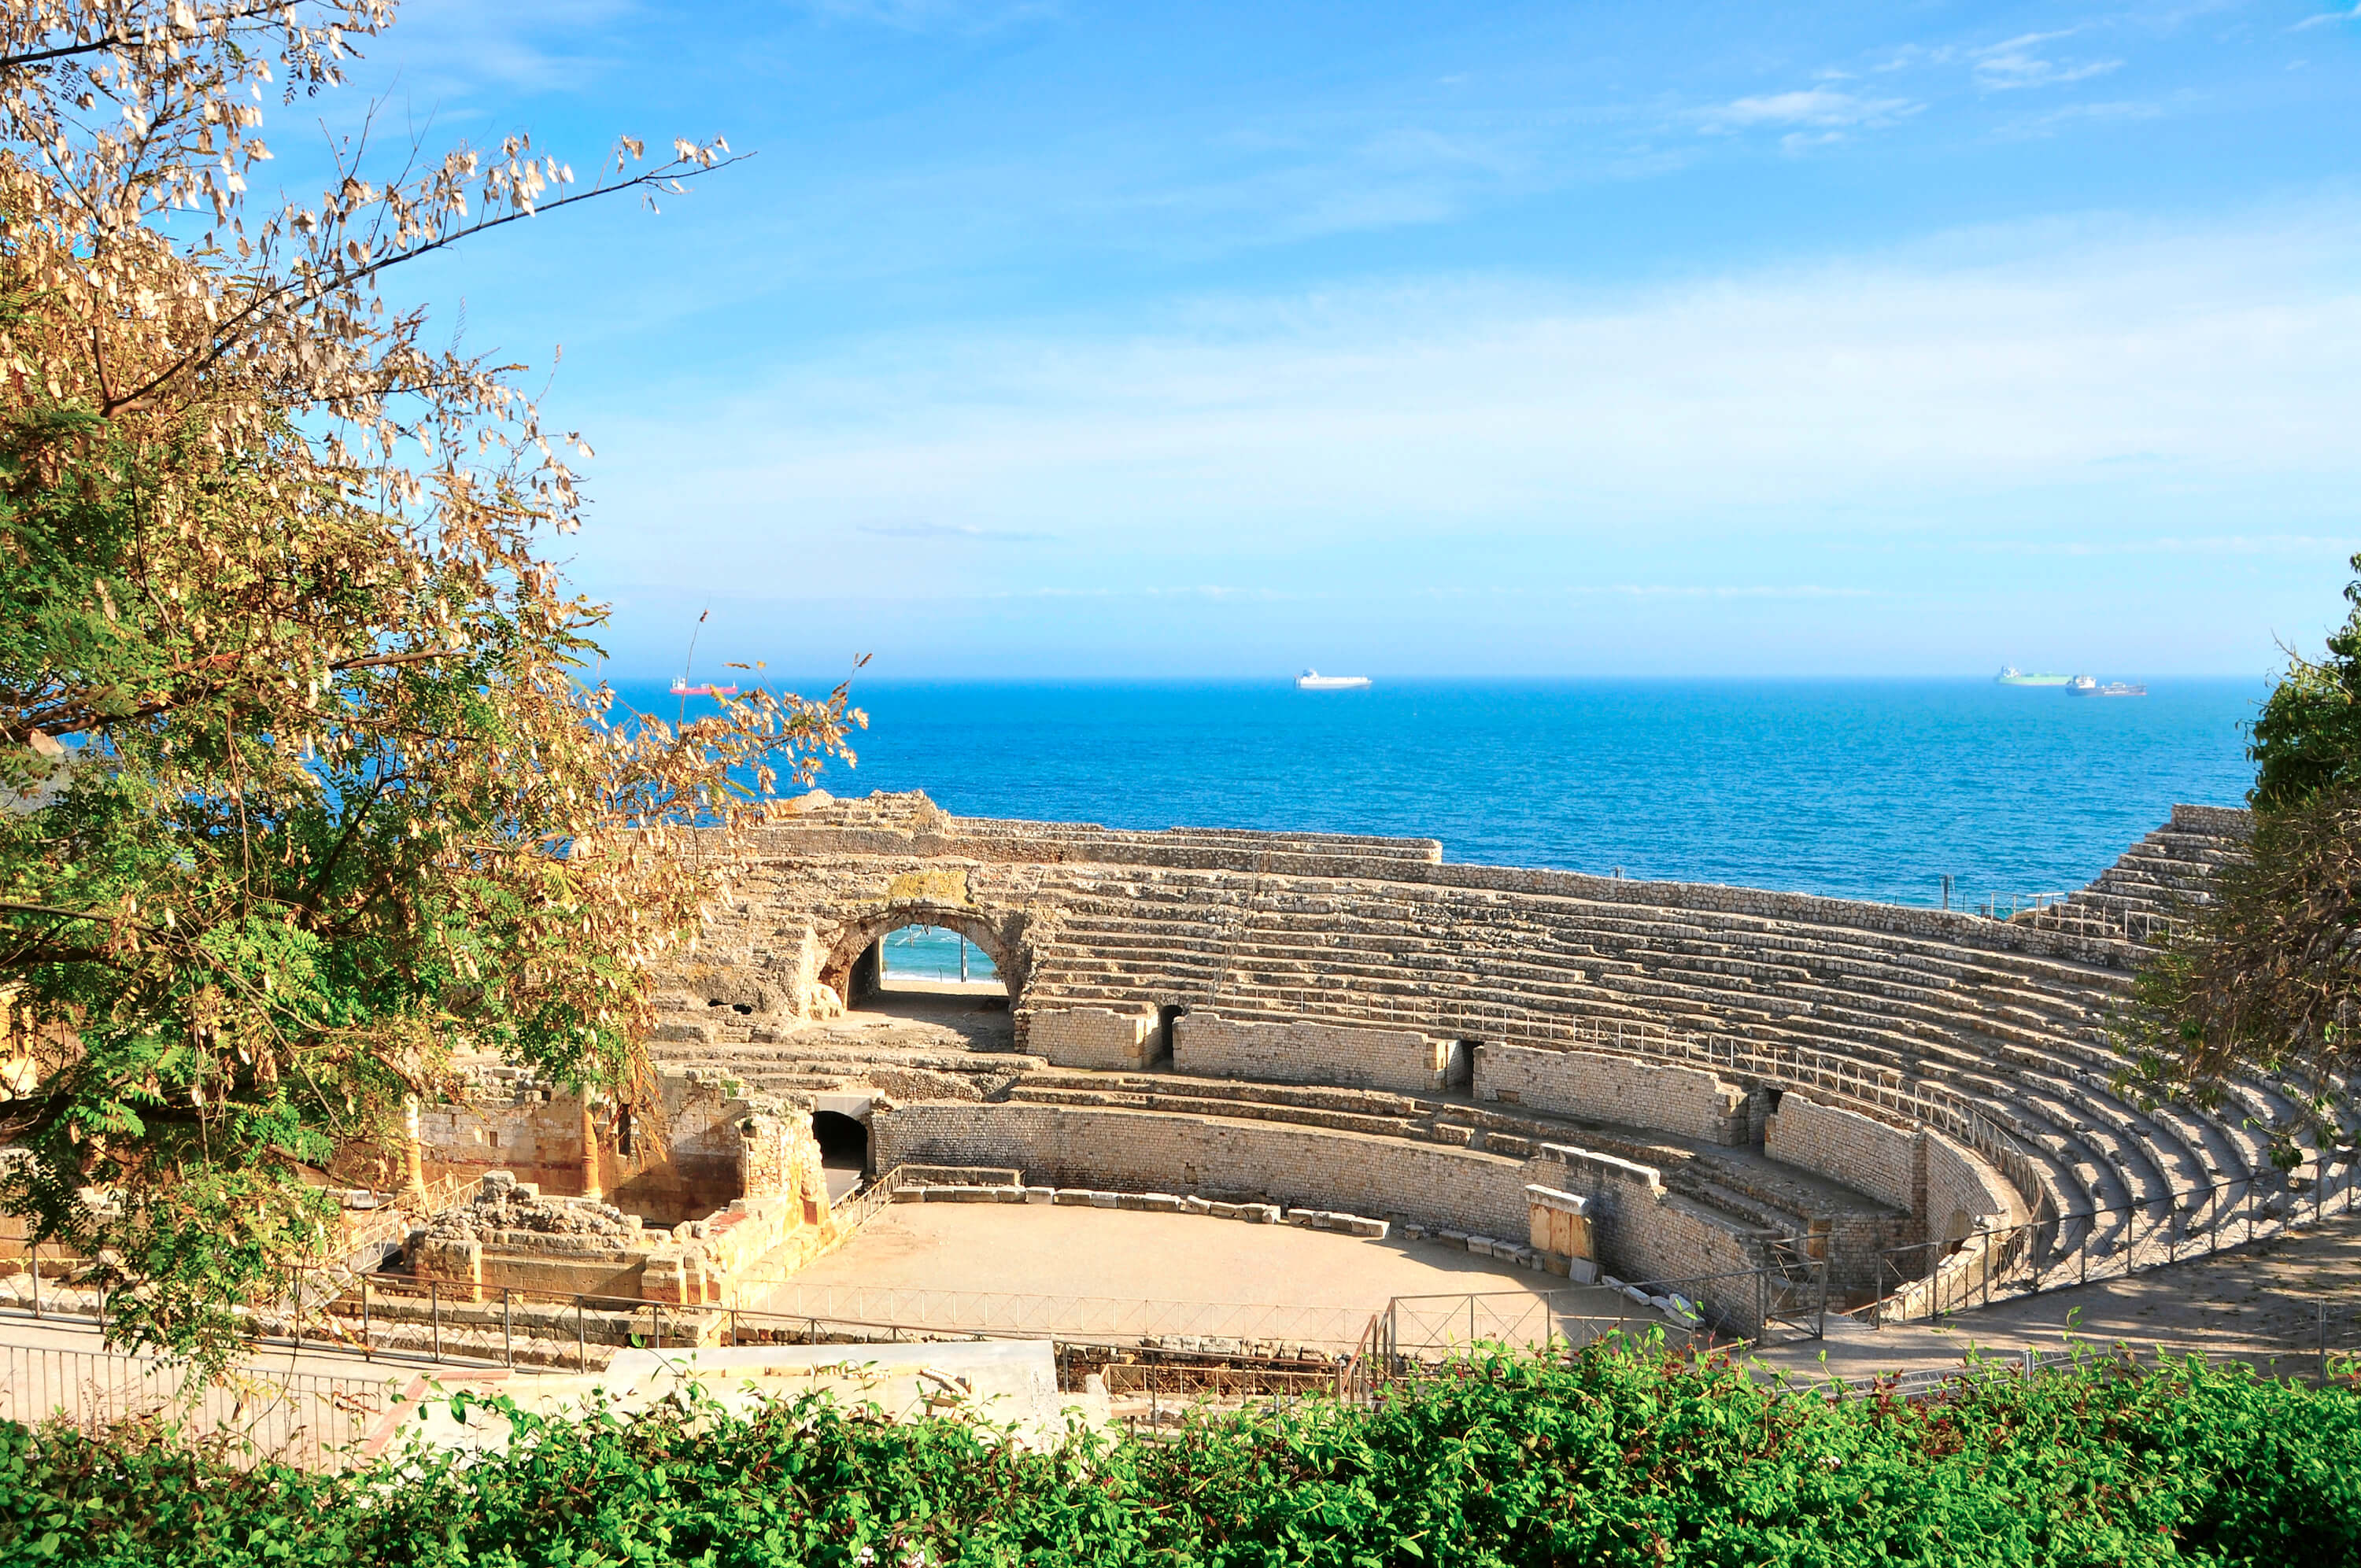 Best Day Trips From Spain - Tarragona